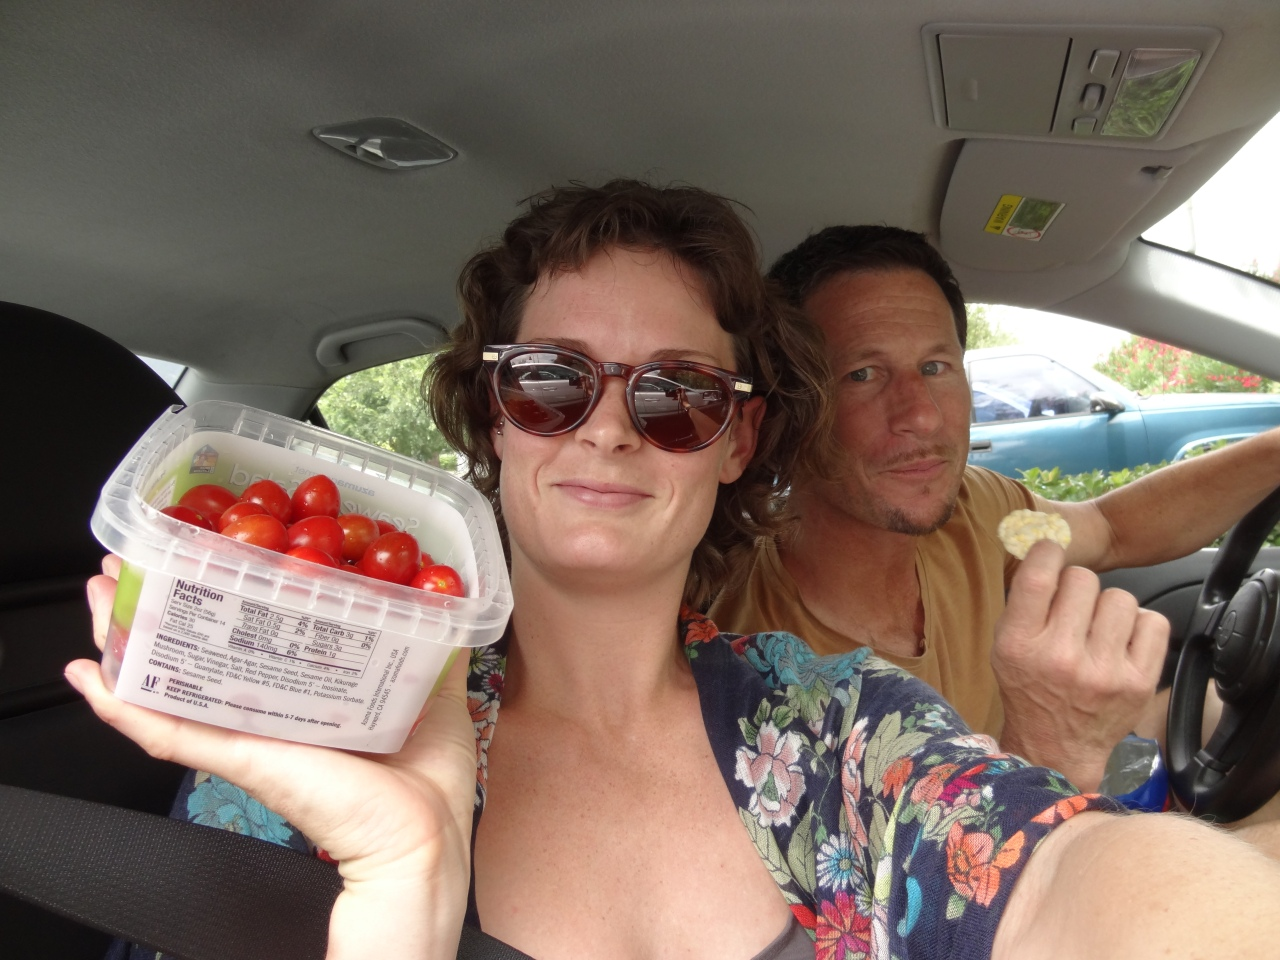 Lunch in the Car like a True American!